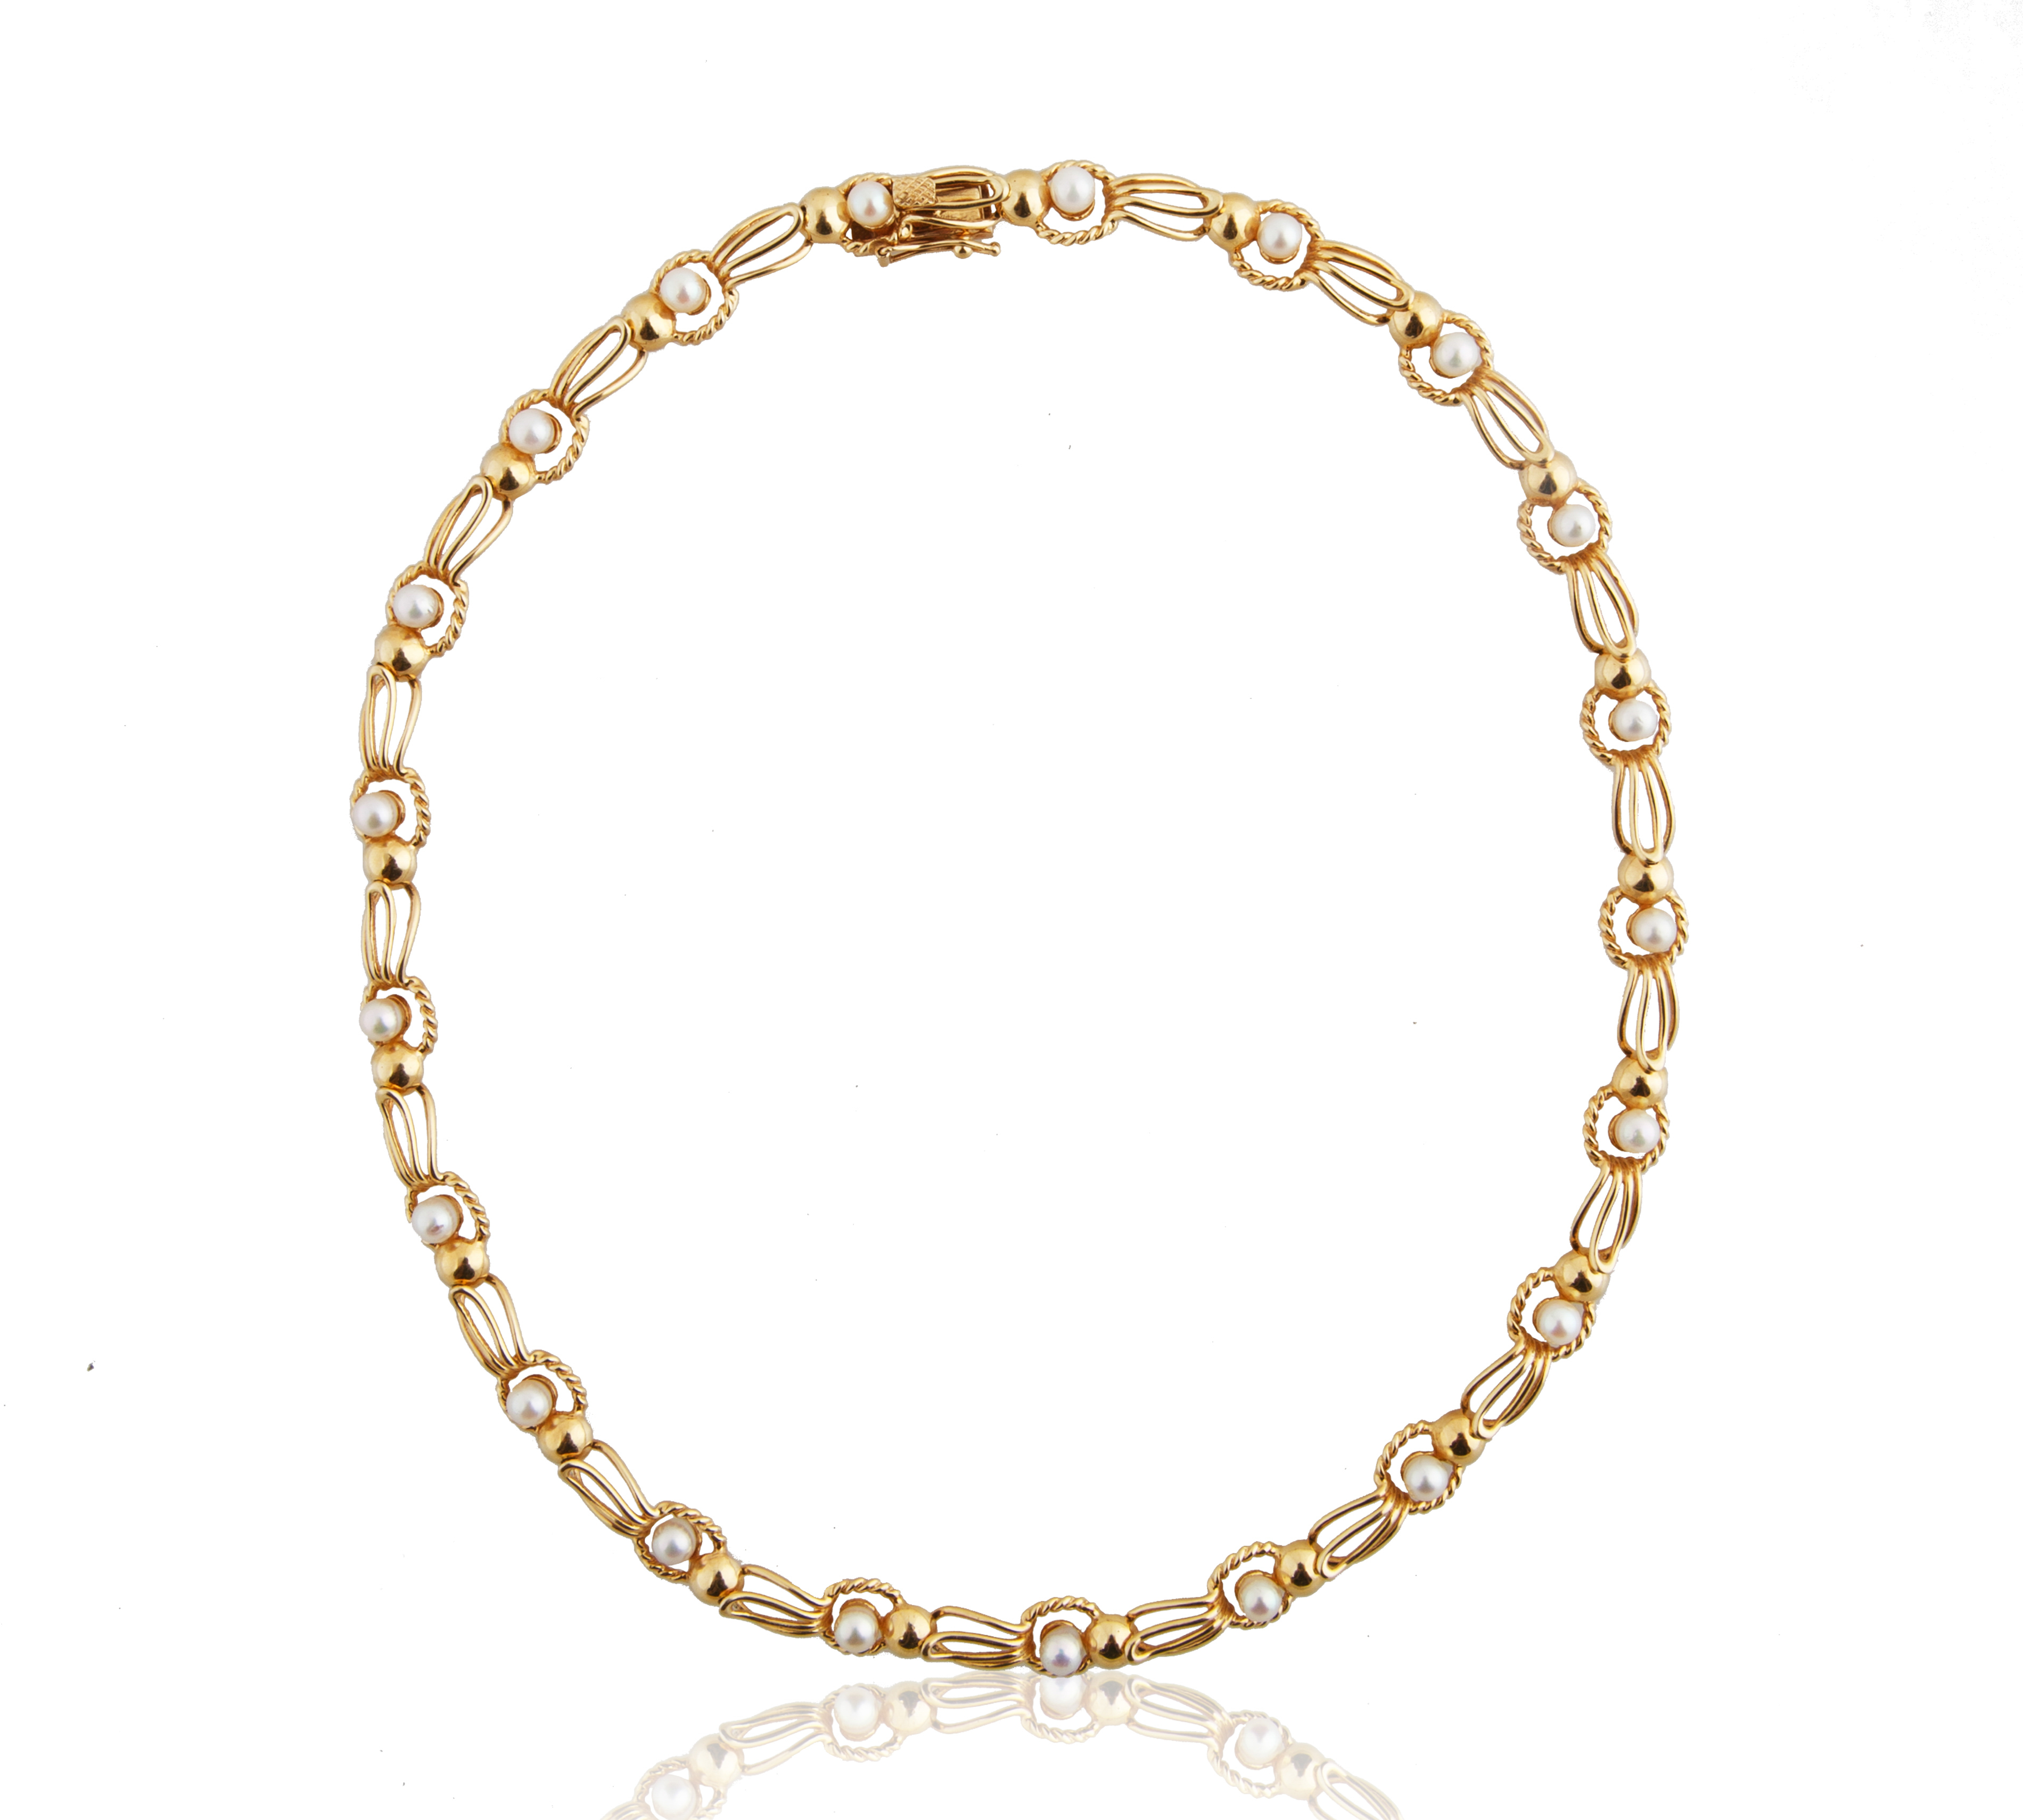 PEARL AND 18KT GOLD BRACELET AND NECKLACE SET - Image 2 of 8